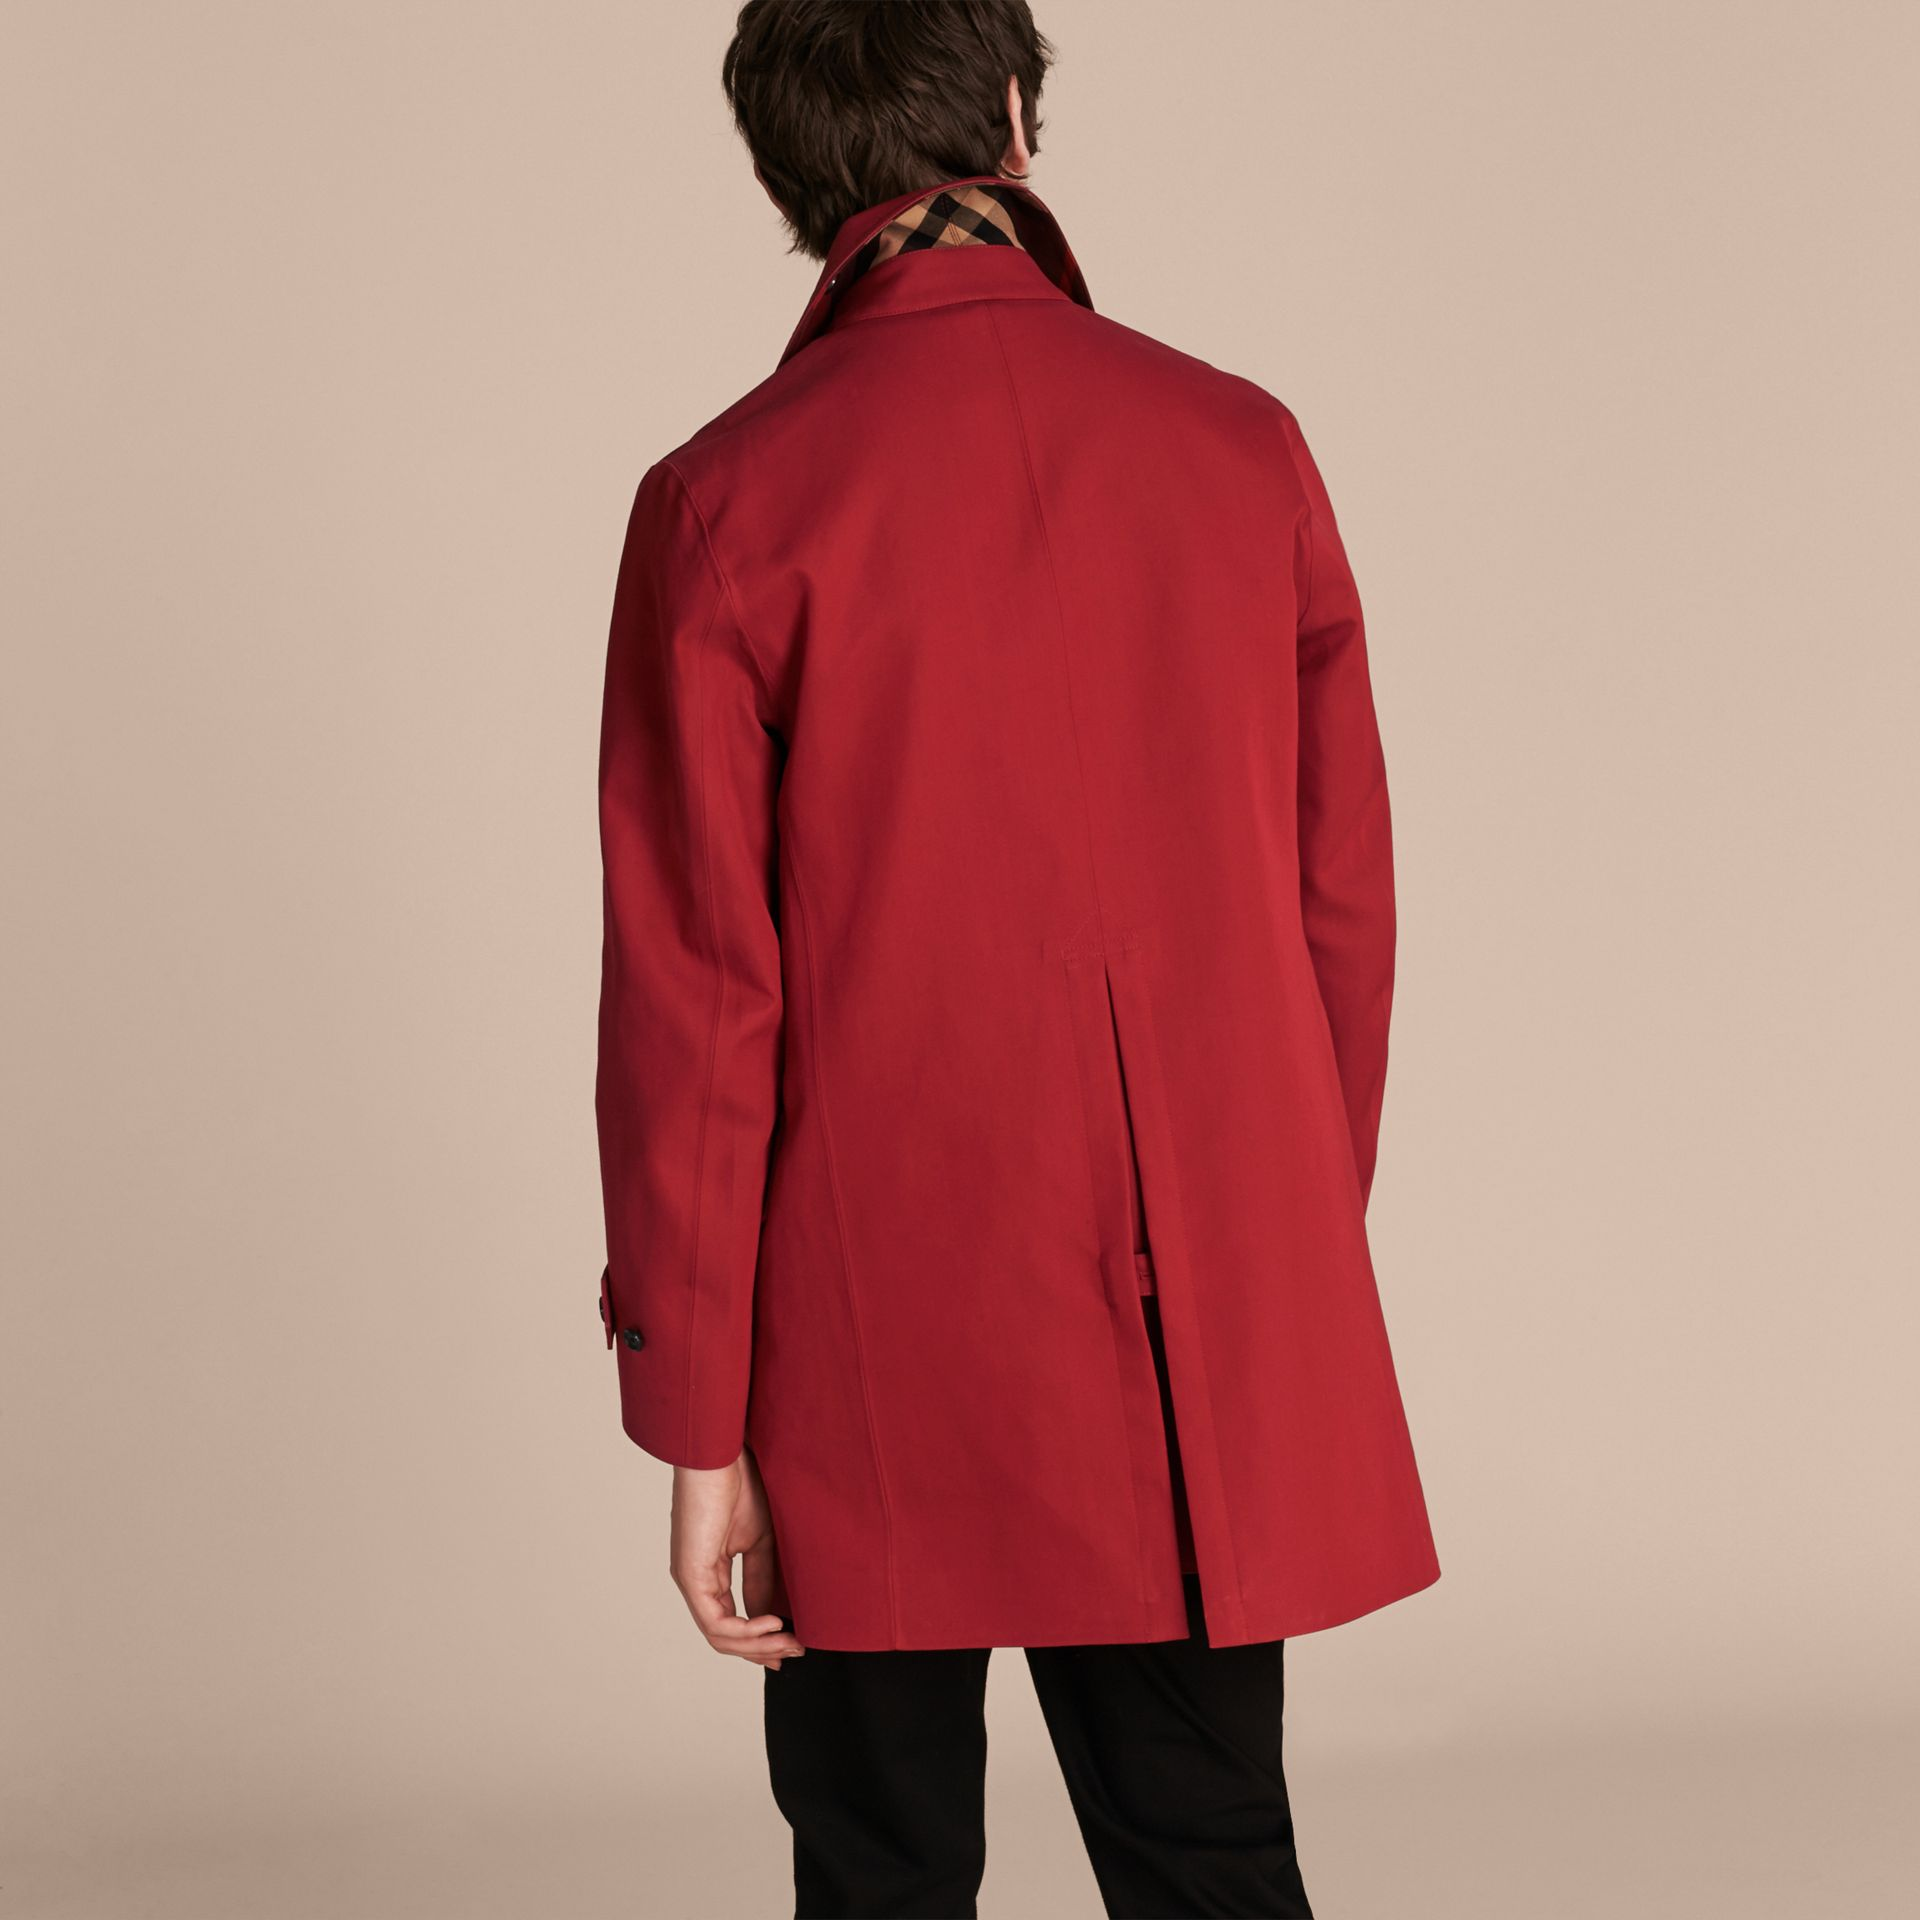 Military red Showerproof Cotton Gabardine Car Coat Military Red - gallery image 3